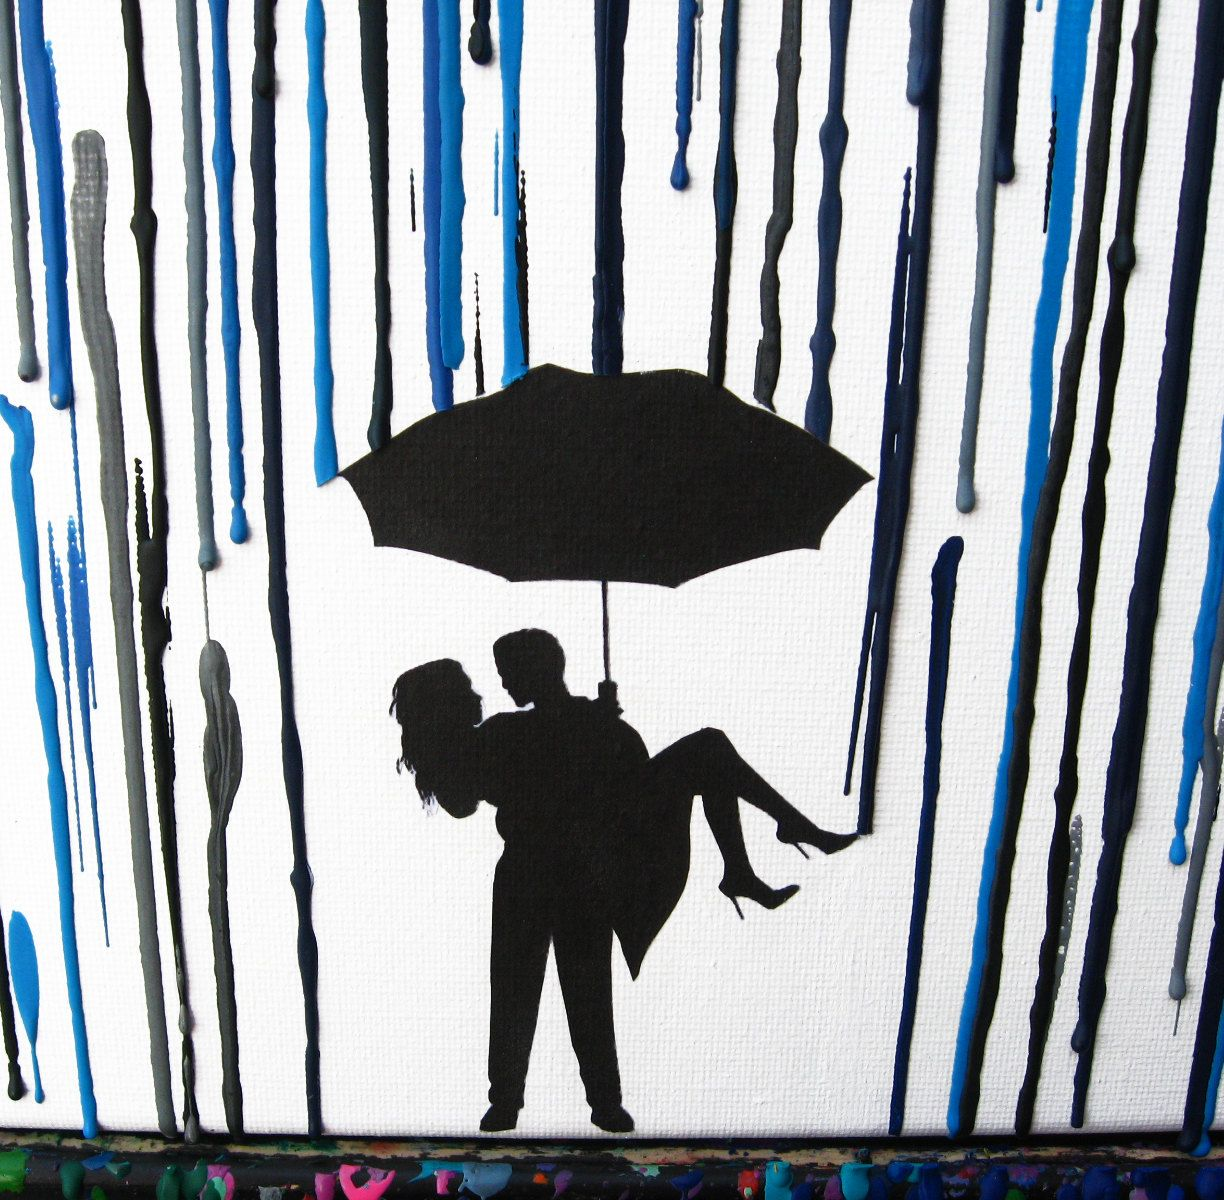 Rainy Day In The Rain Melted Crayon Art Silhouette Couple Under Umbrella Painting Custom Handmade Wedding Gift Wax